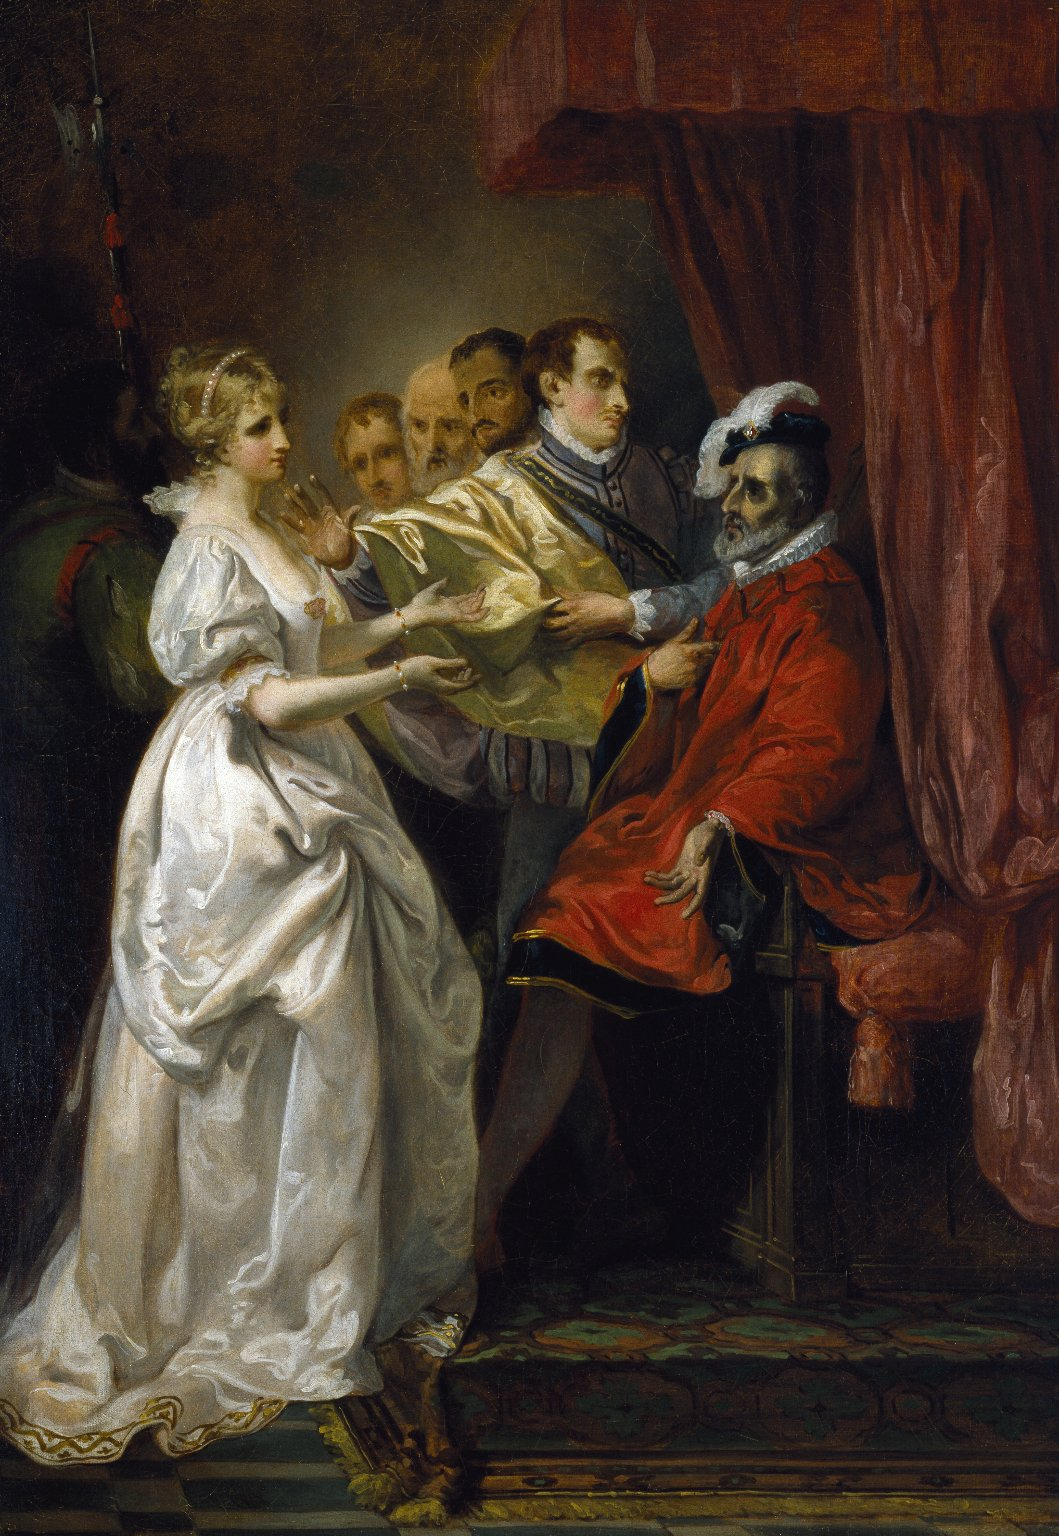 Helena and Count Bertram before the King of France